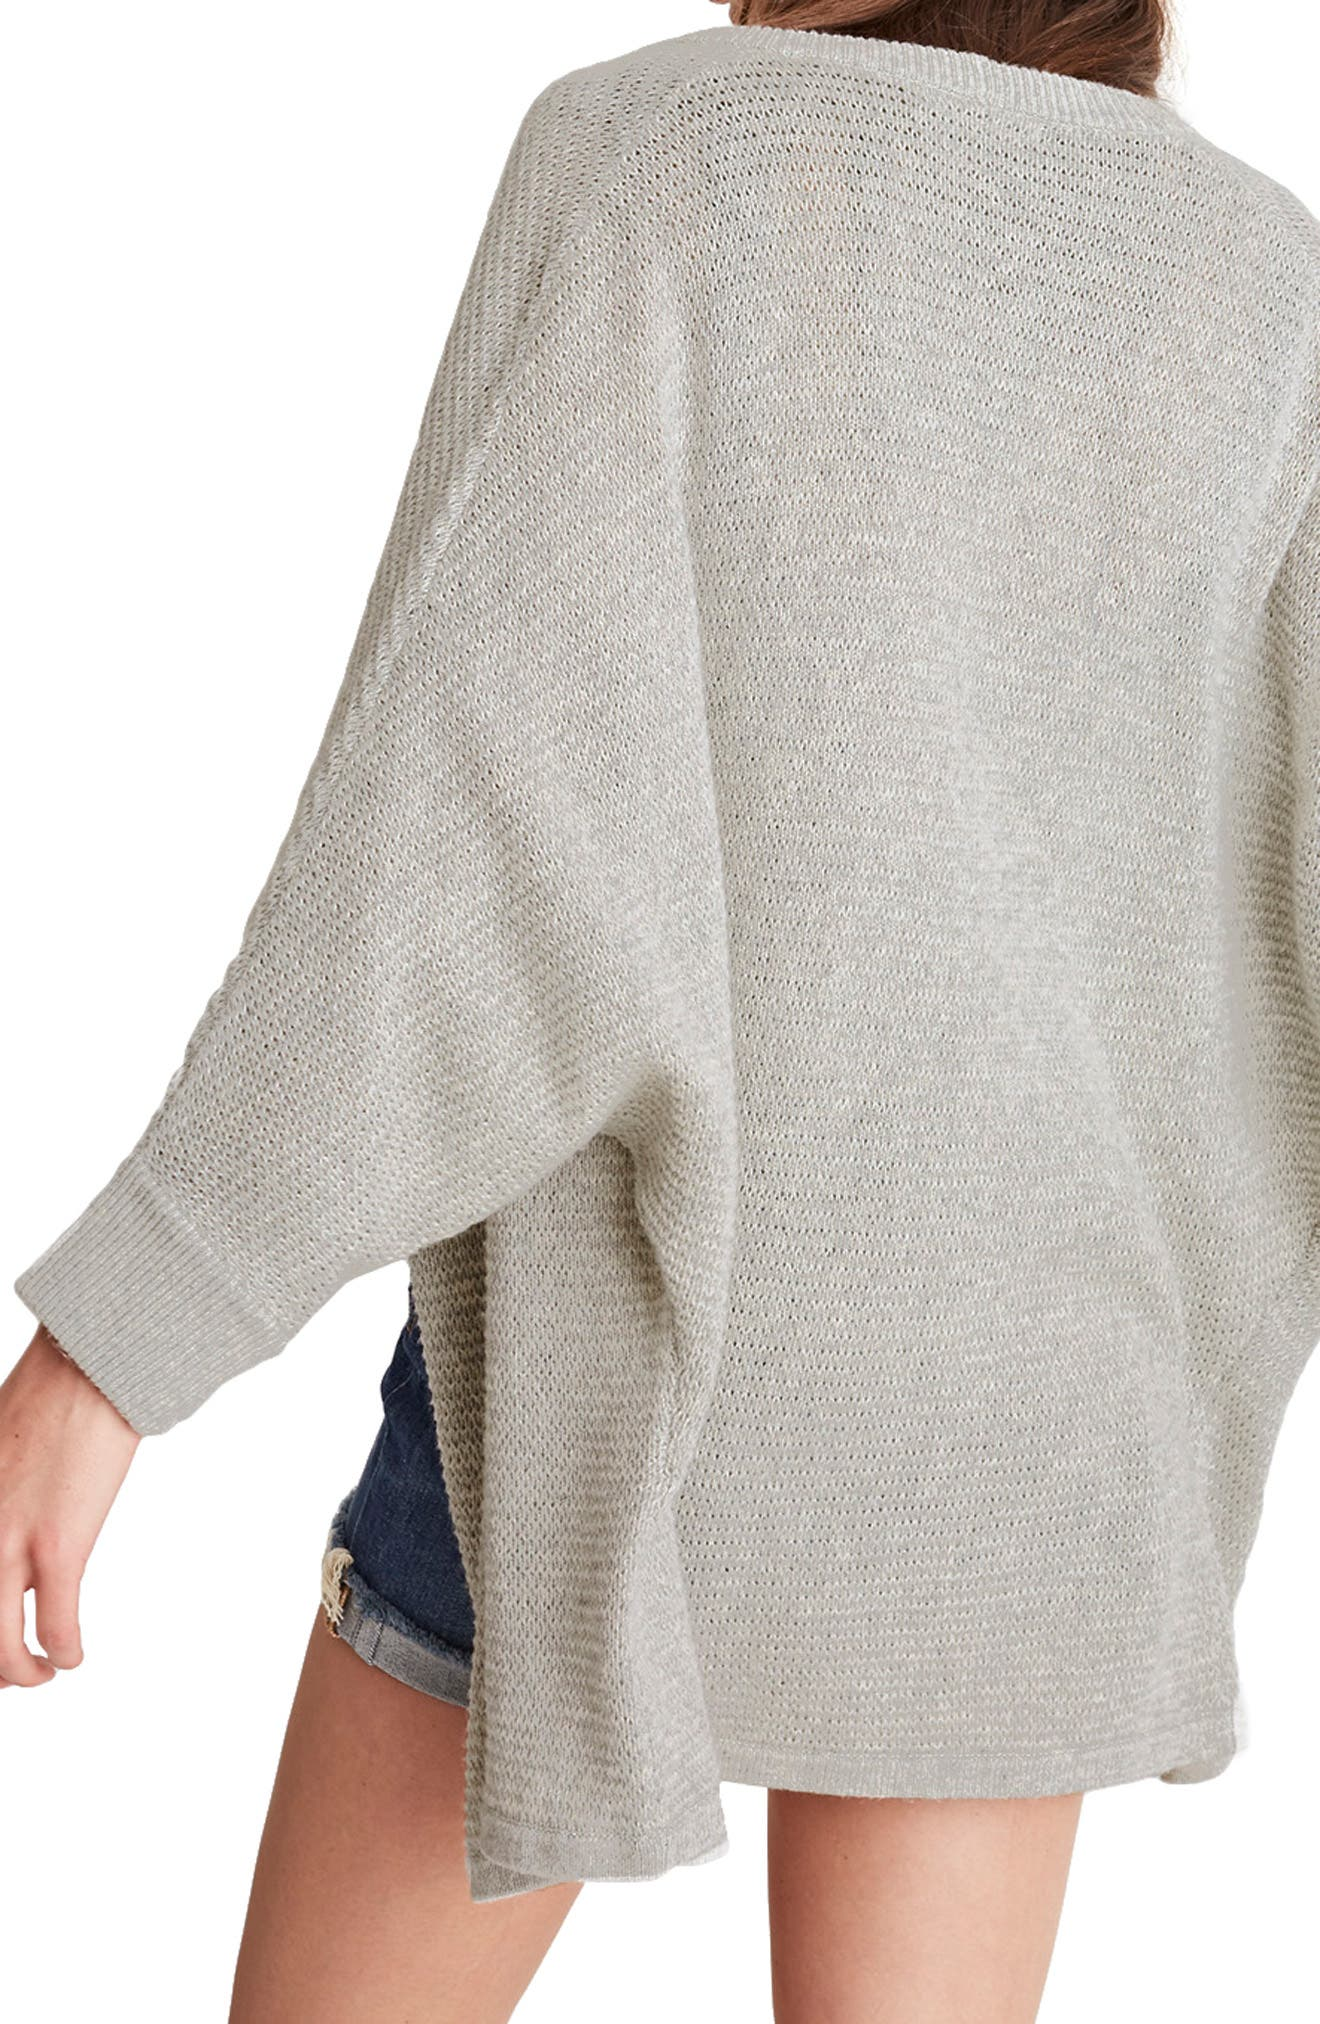 Seabank Cardigan,                             Alternate thumbnail 2, color,                             HEATHER DOVETAIL